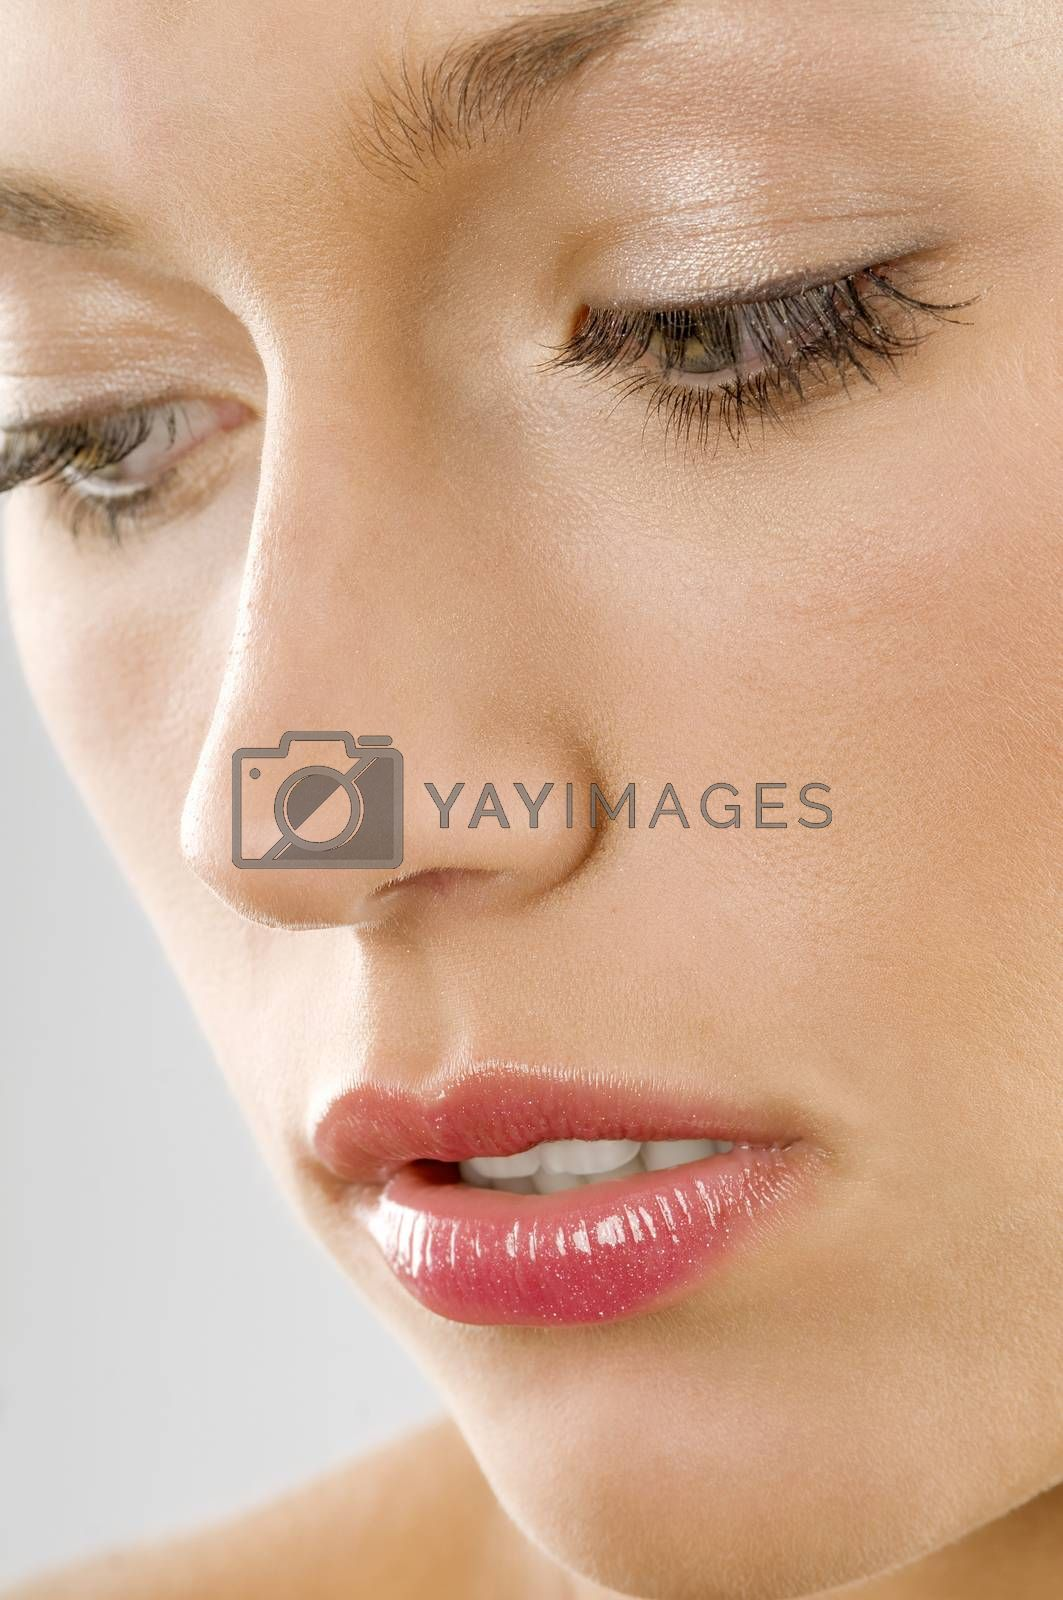 Royalty free image of nice close up by fotoCD